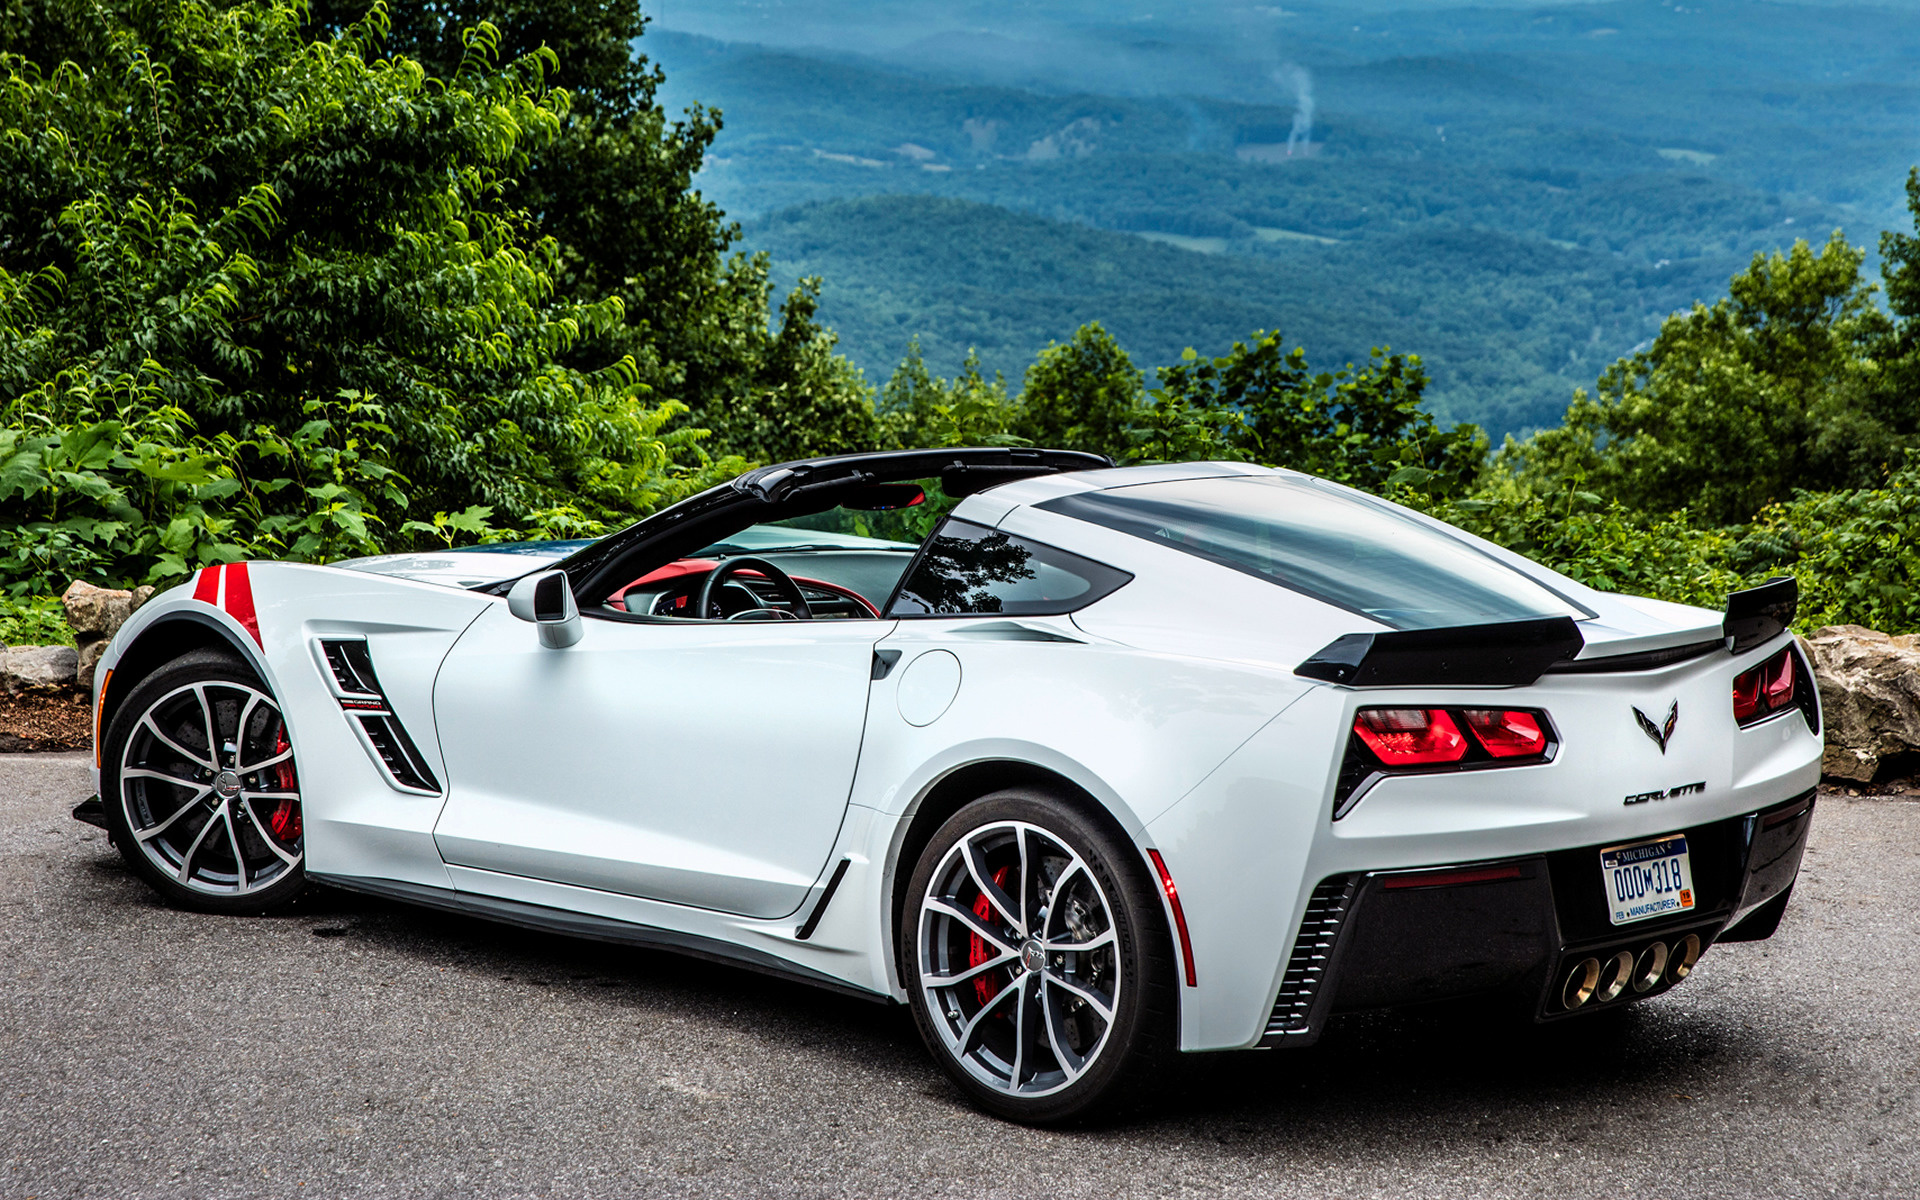 Chevrolet Corvette Grand Sport (2017) Wallpapers and HD Images - Car ...